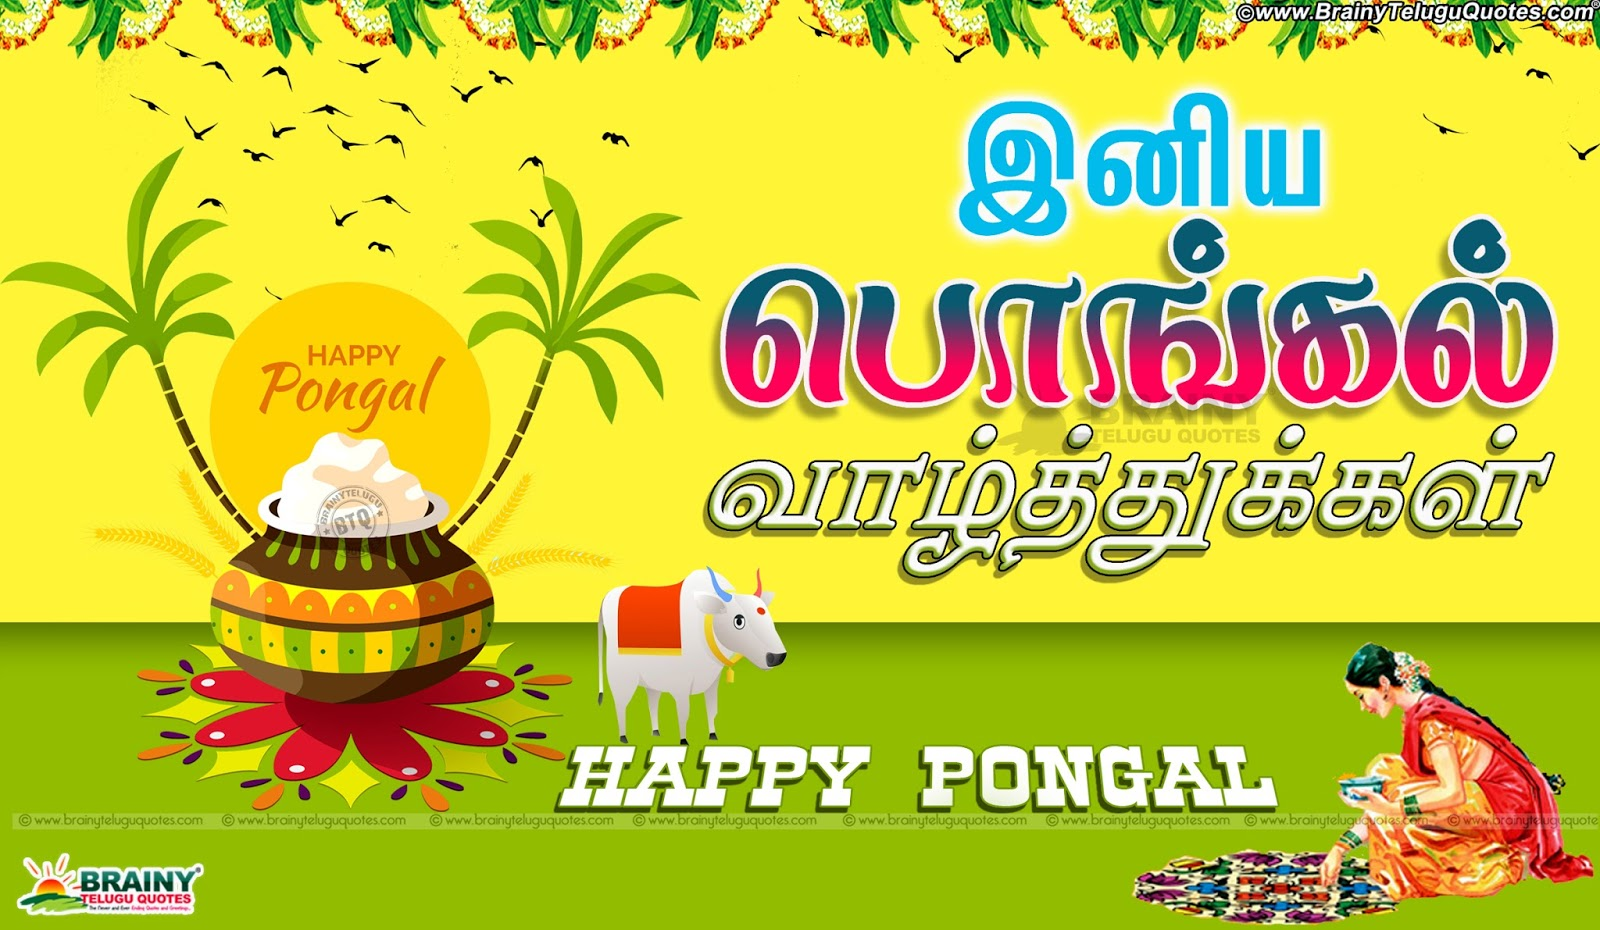 Ponkal valthukkal latest tamil pongal festival wishes quotes tamil pongal festival wishes quotes hd wallpapers pongal tamil greetings with hd wallpapers kristyandbryce Images